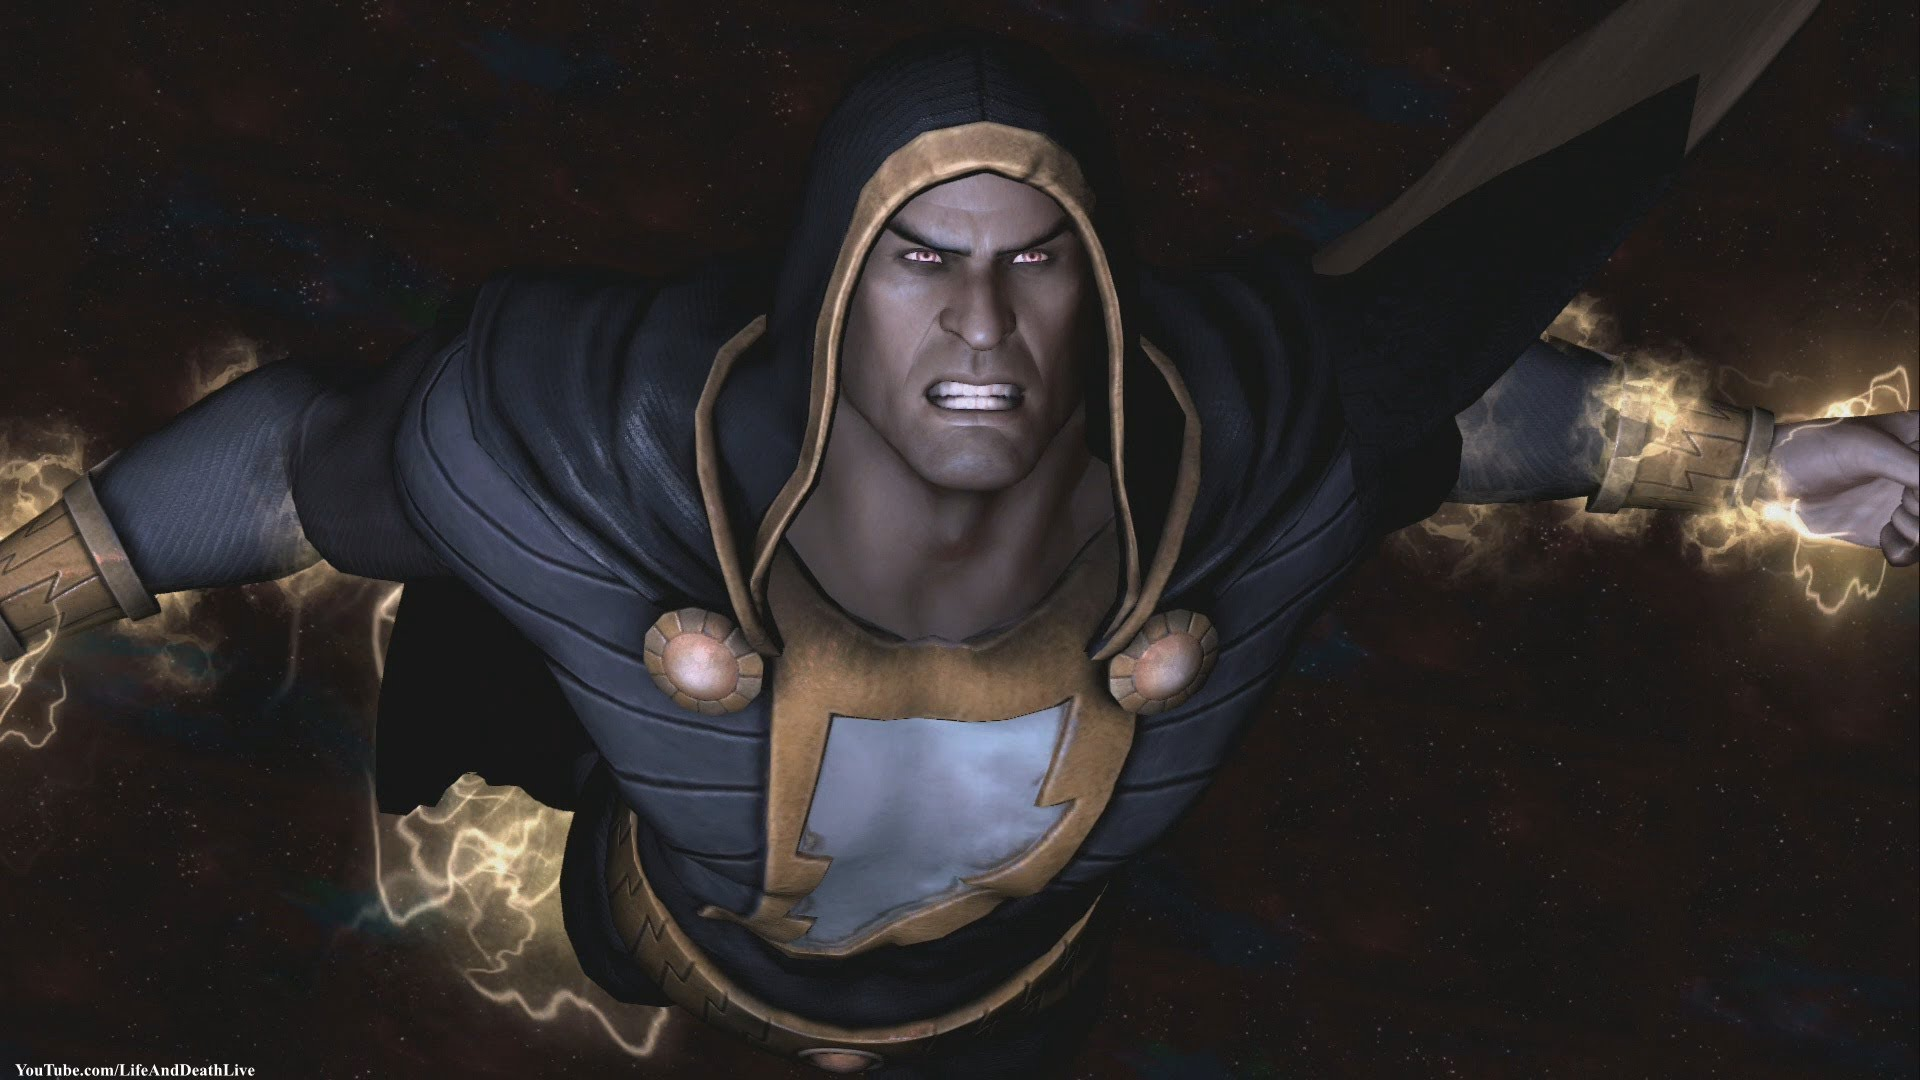 New 52 Shazam Skin From The Console Version Of Injustice